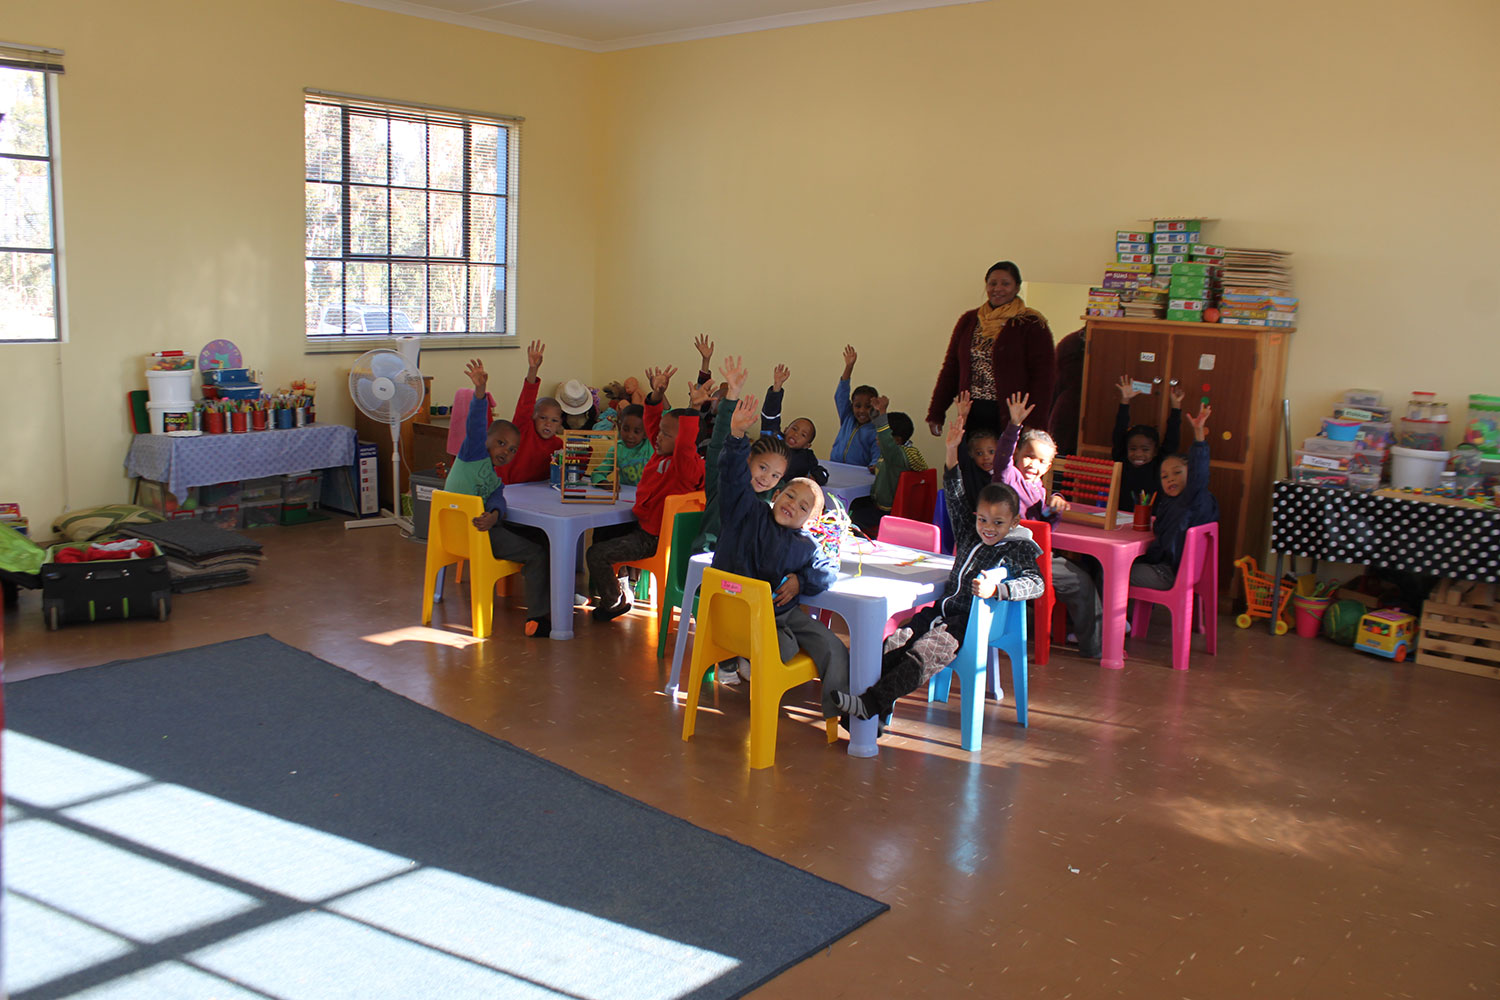 Read more about the article NEW CLASSROOM BUILT FOR THE MATJIESRIVIER NGK PRIMARY SCHOOL AS A CONTRIBUTION FROM THE DST-NRF CIMERA KARIN PROJECT